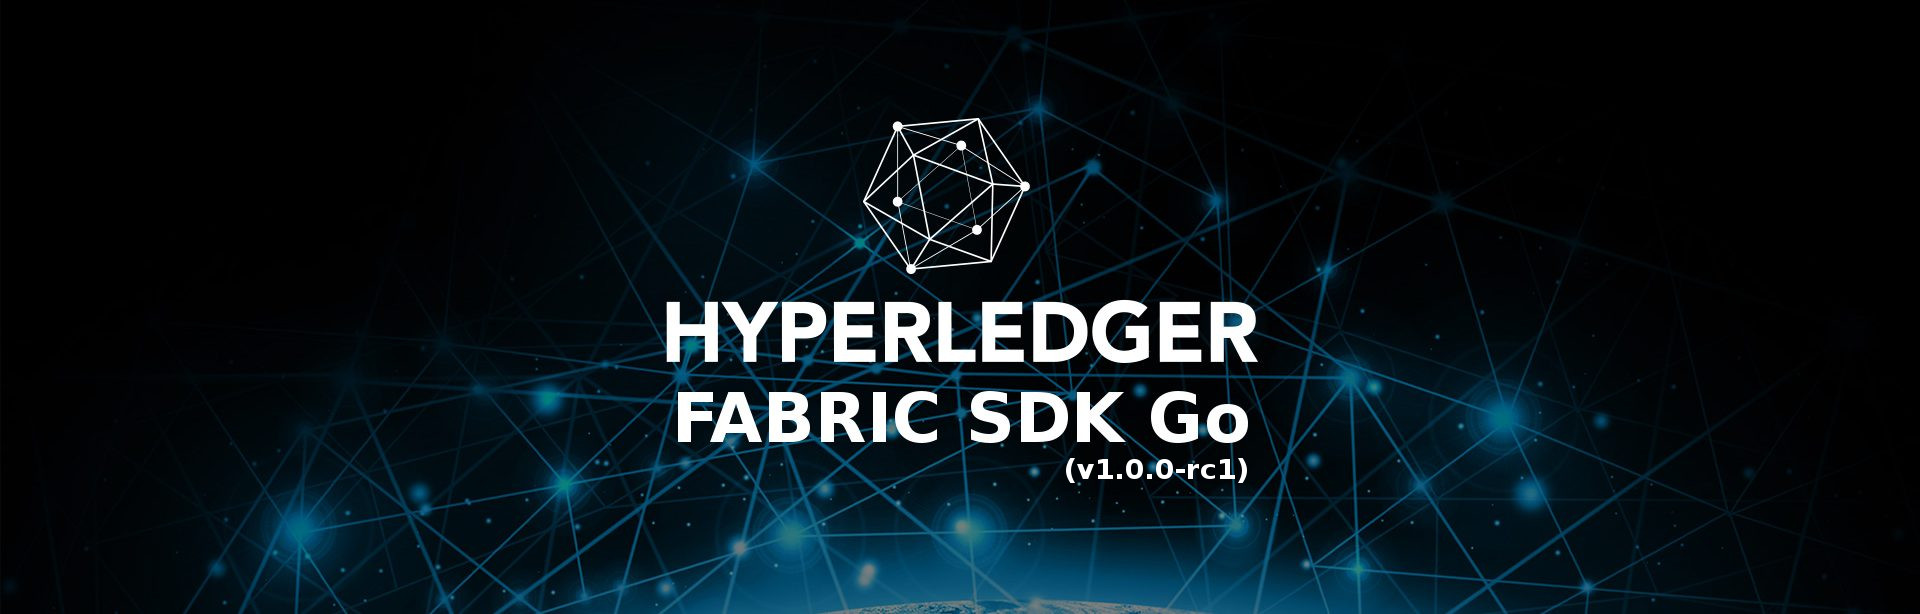 Tutorial Hyperledger Fabric SDK Go: How to build your first app? (v1.0.0-rc1)